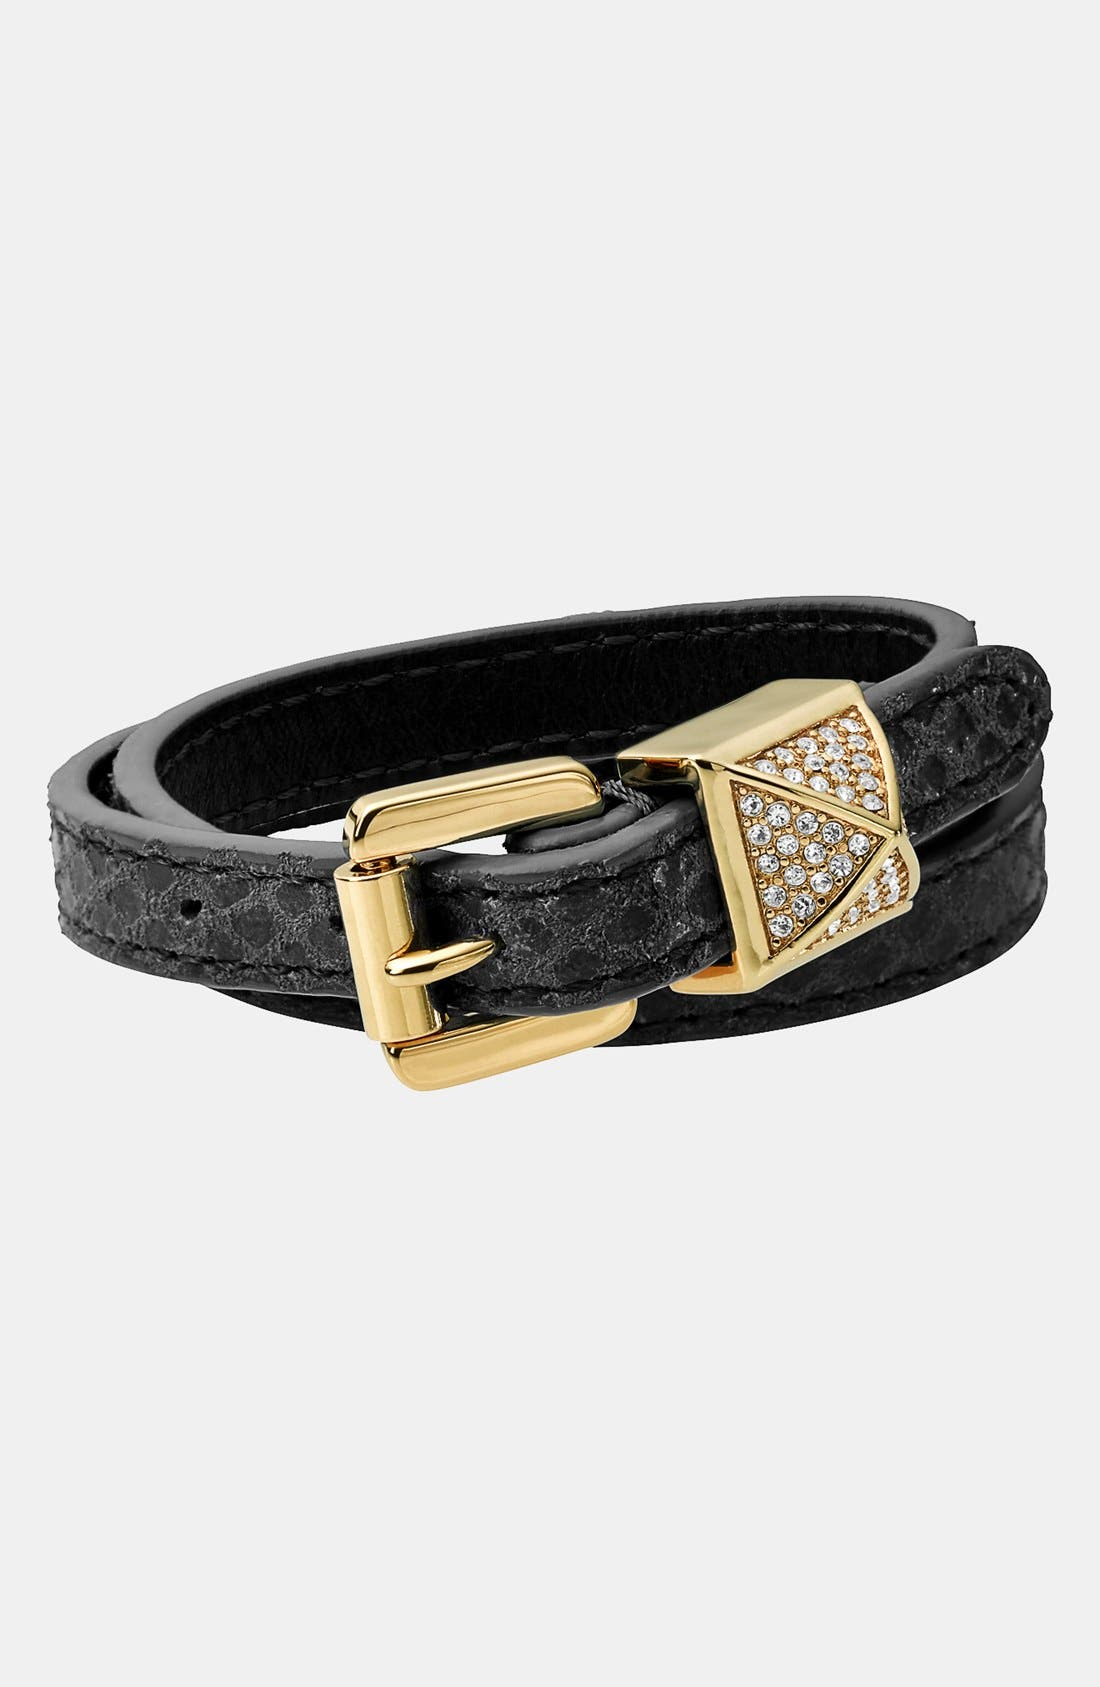 Alternate Image 1 Selected - Michael Kors 'Glam Rock' Leather Wrap Bracelet